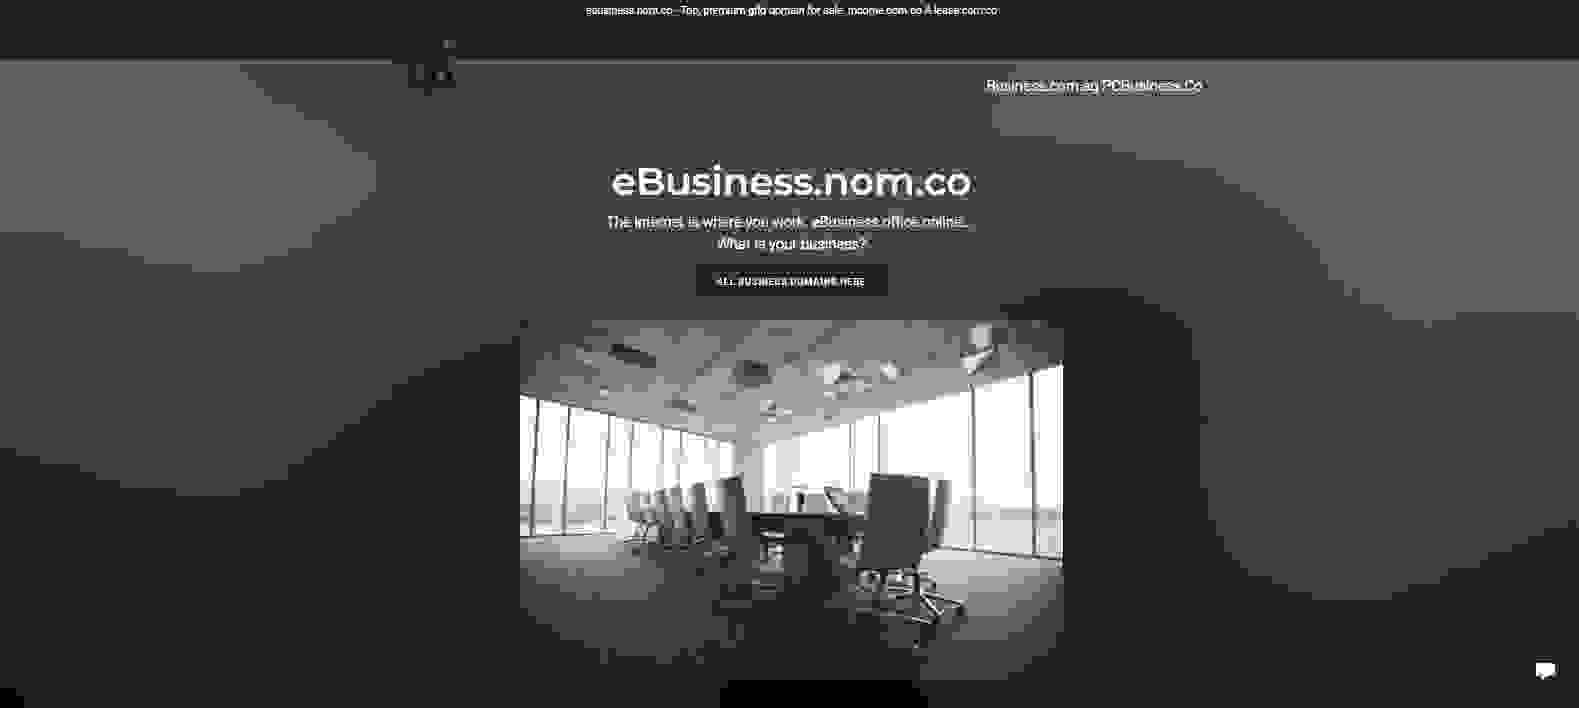 work online @ebusiness.nom.co